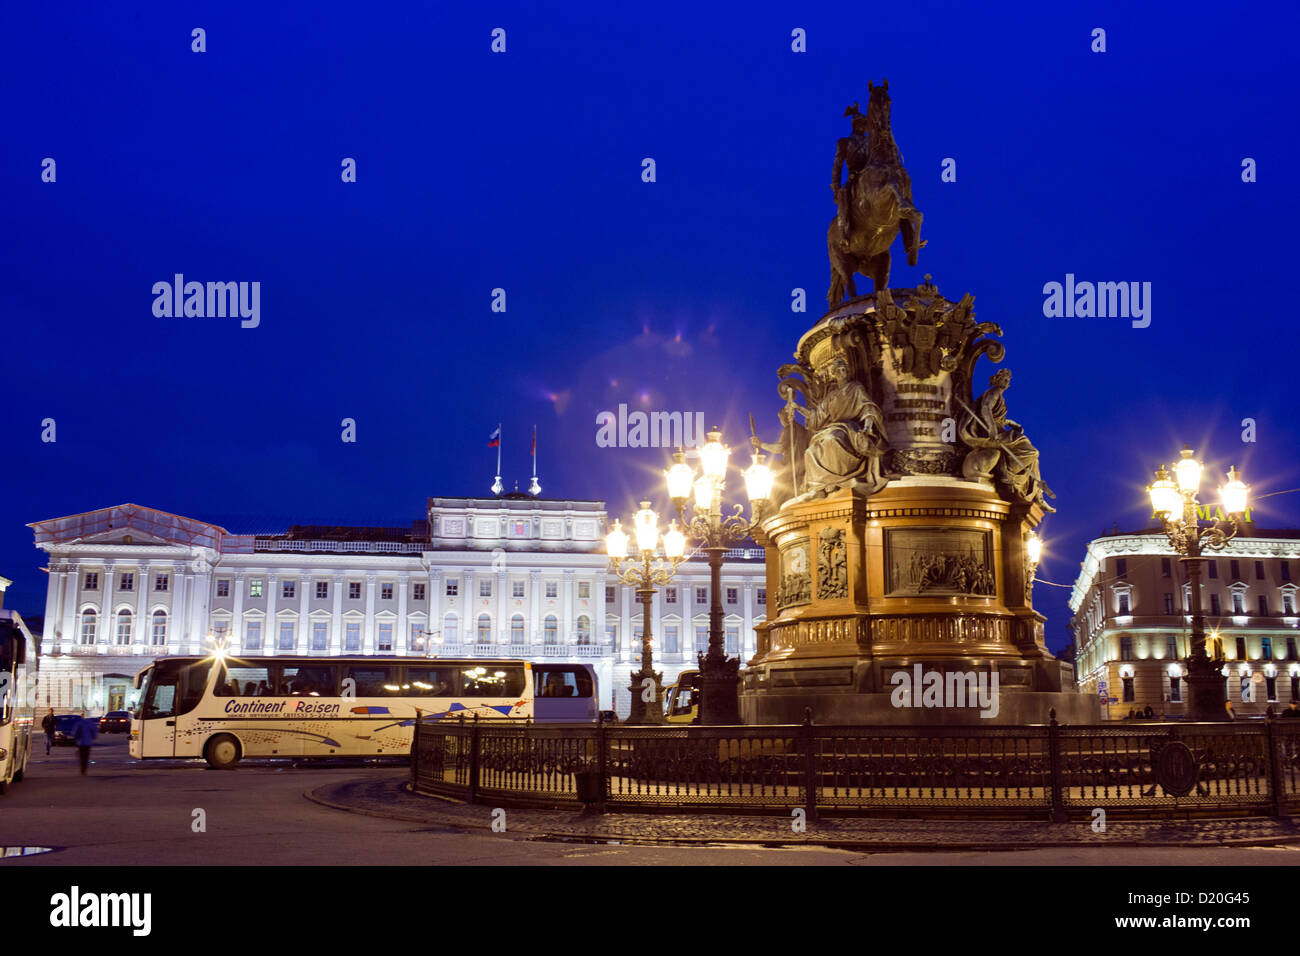 Historic buildings are pictures during the blue hour in Saint Petersburg, Russia, 18 October 2012. The entire historic - Stock Image